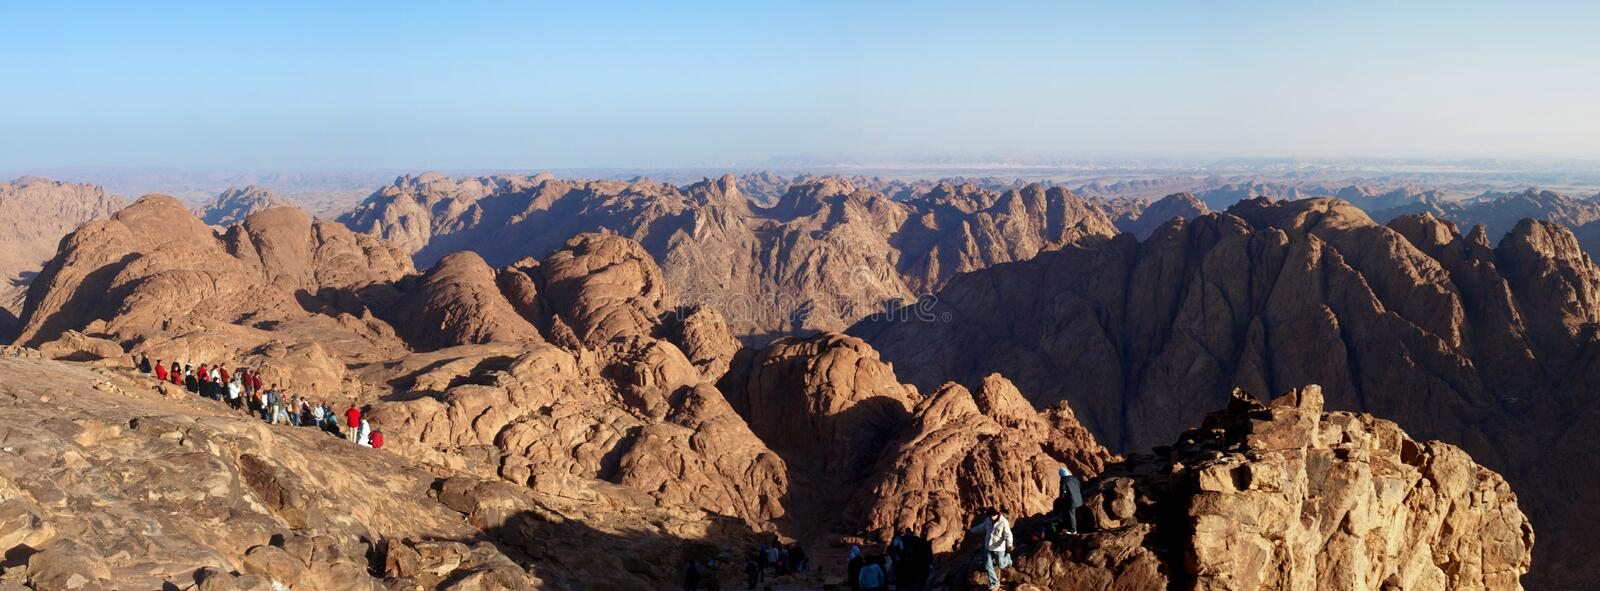 Mount Sinai Panorama stock photos